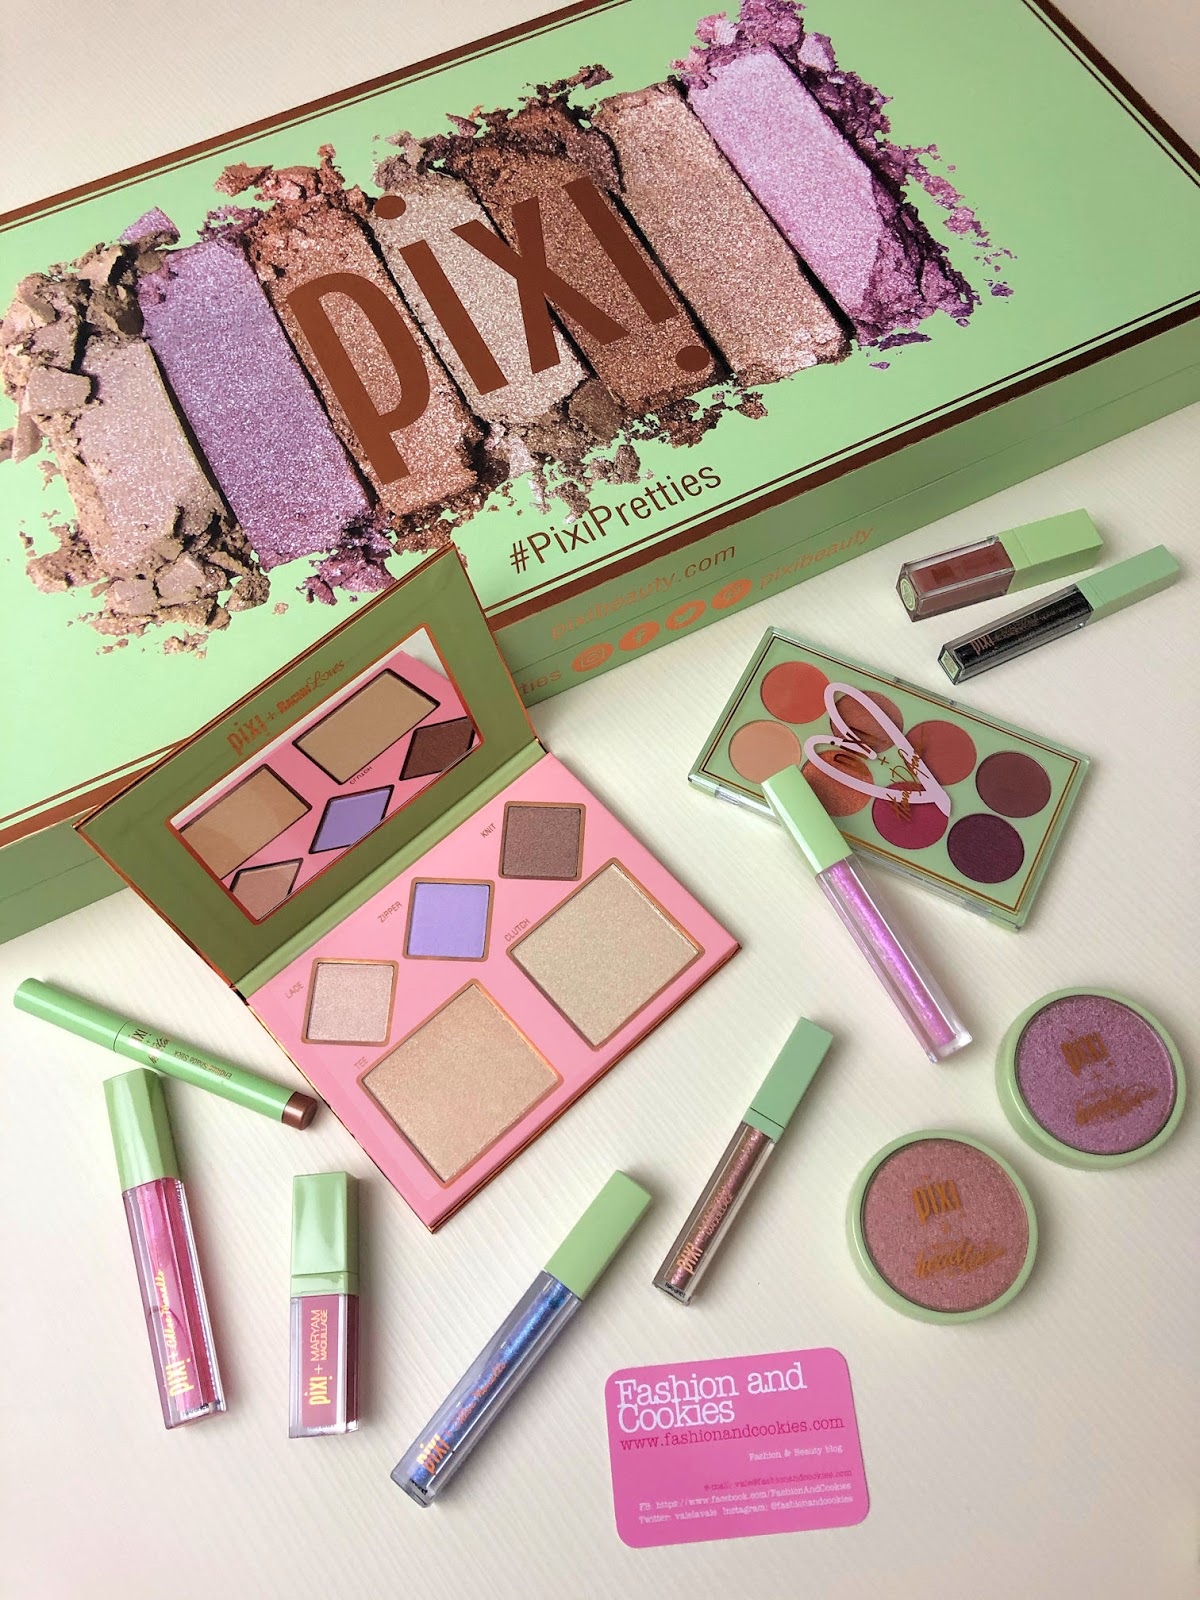 PIXI PRETTIES makeup collection by Pixi Beauty for Fall/Winter 2019-2020 review